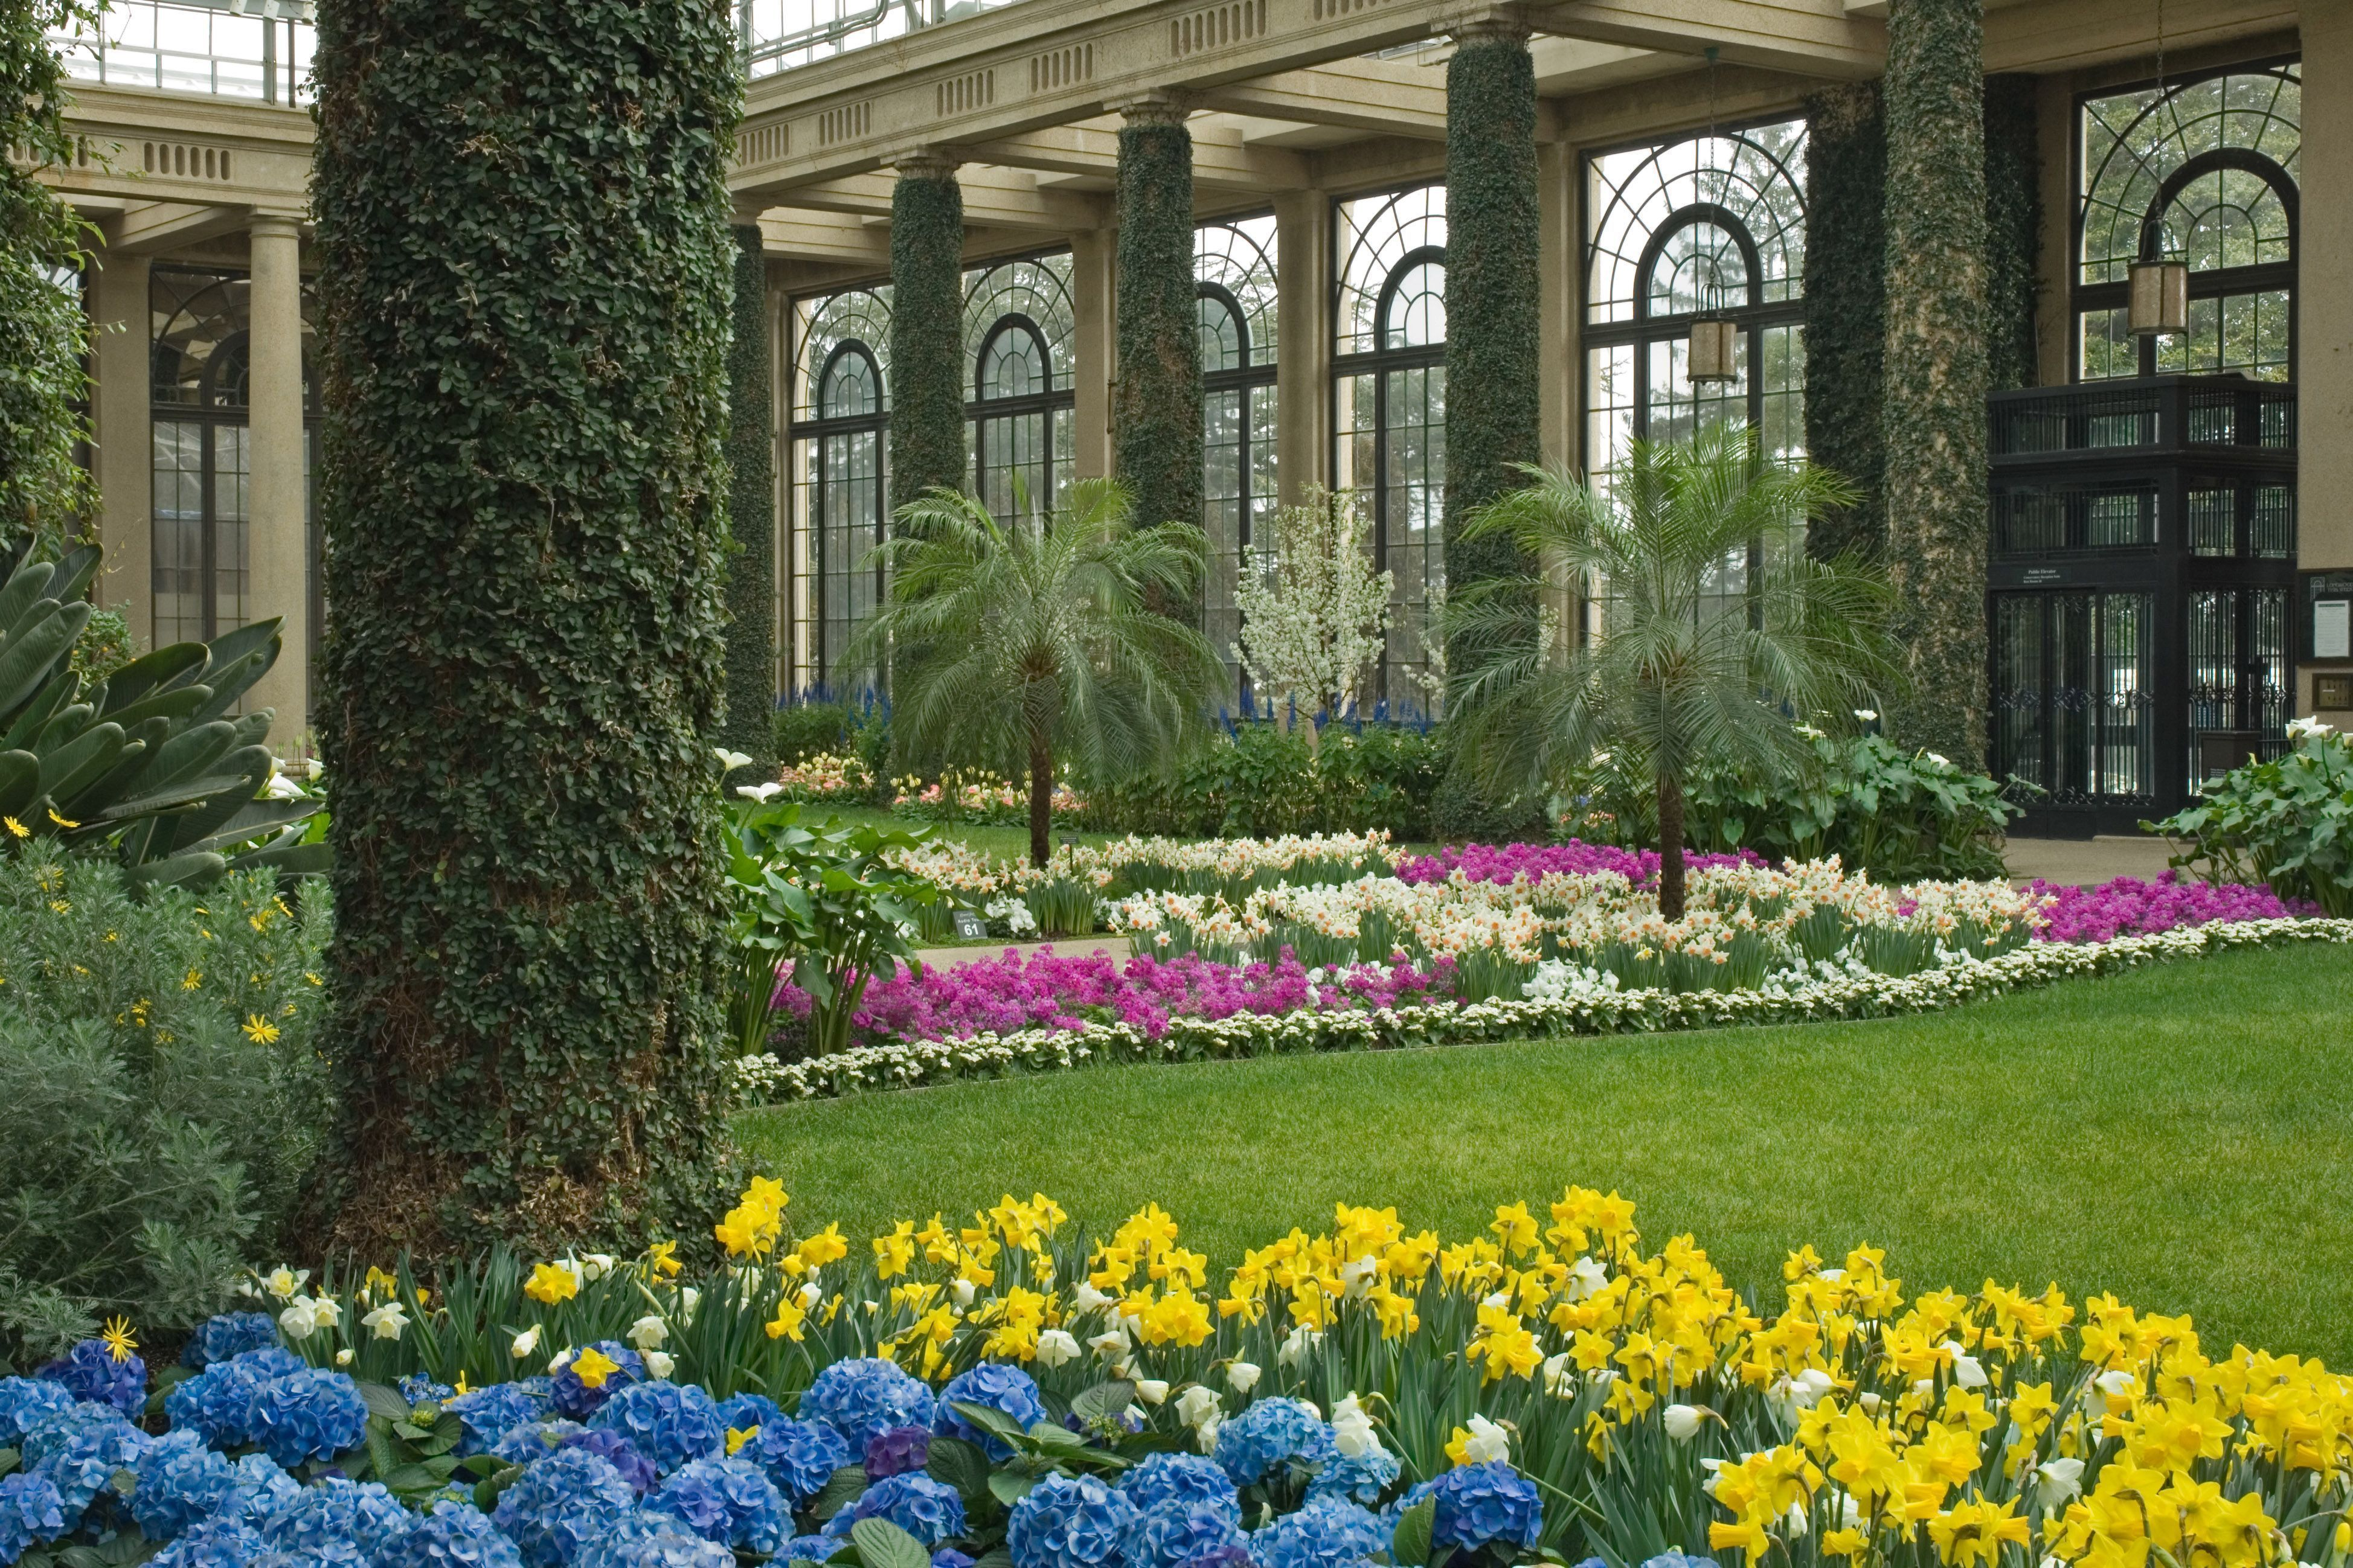 Get Inspired By Both The Formal Gardens Of Nemours Mansion And The Natural,  Native Landscape Of Mt. Cuba Center. The Nemours Mansion And Gardens Is A  ...